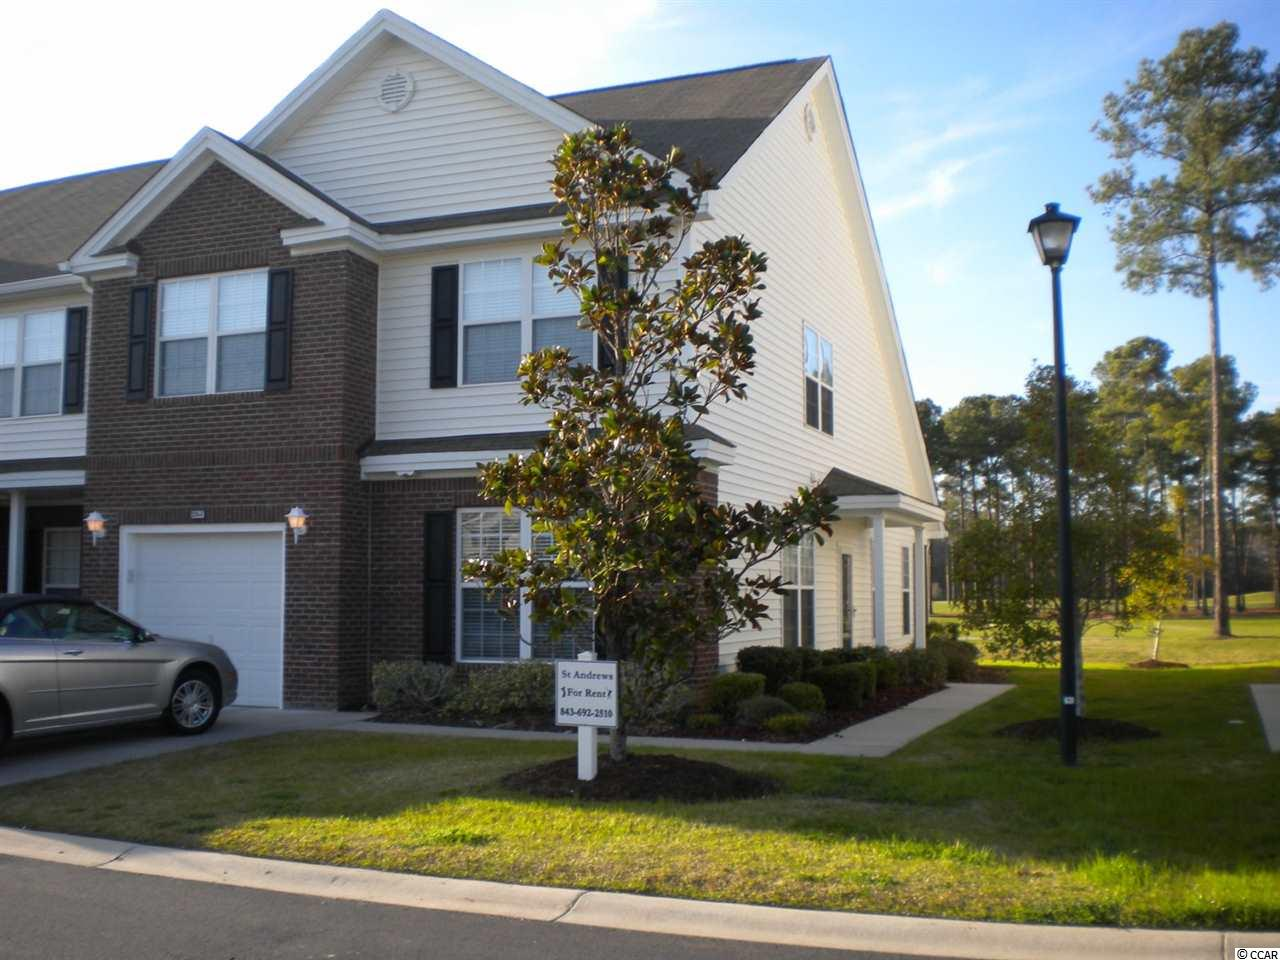 Condo For Sale At St Andrews Townhomes In Myrtle Beach South Carolina Unit E Listing Mls